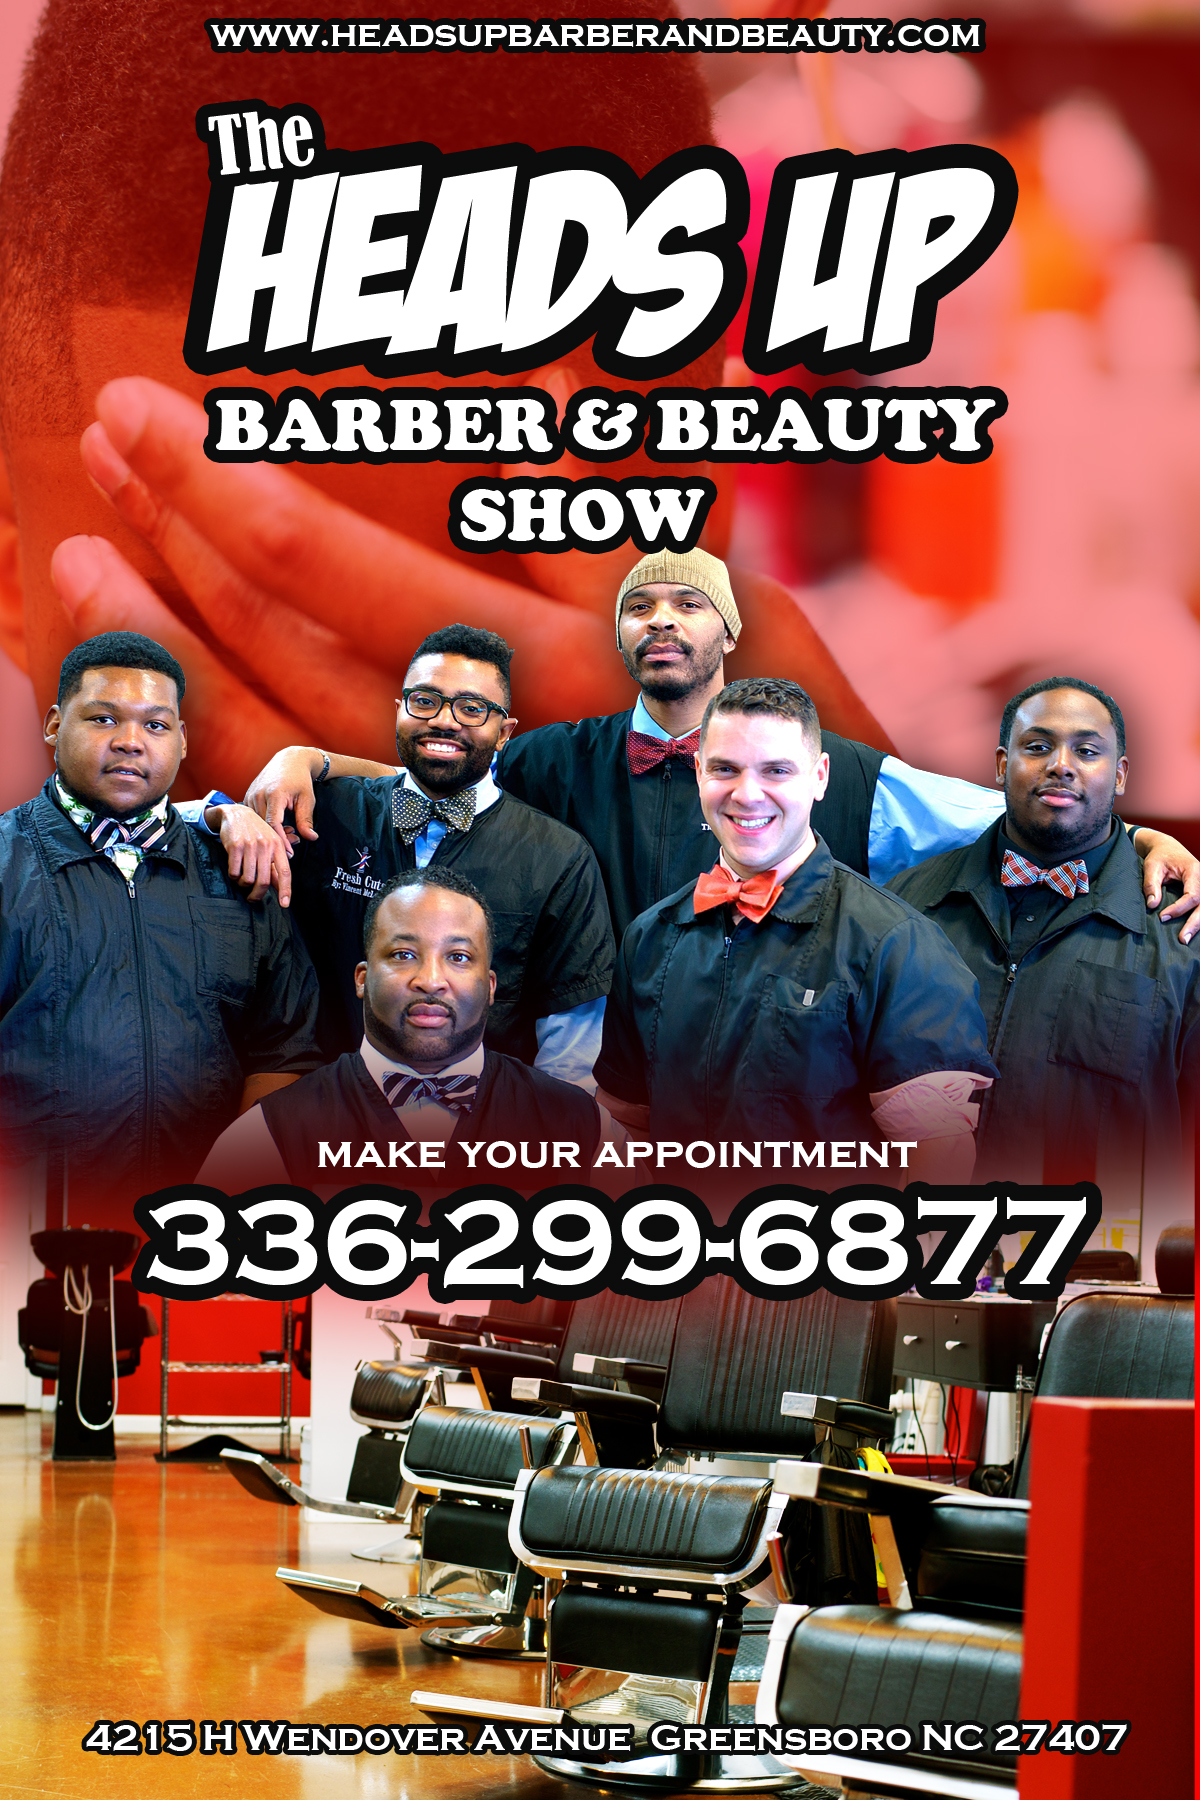 The Heads Up Barbershop Show in Greensboro NC